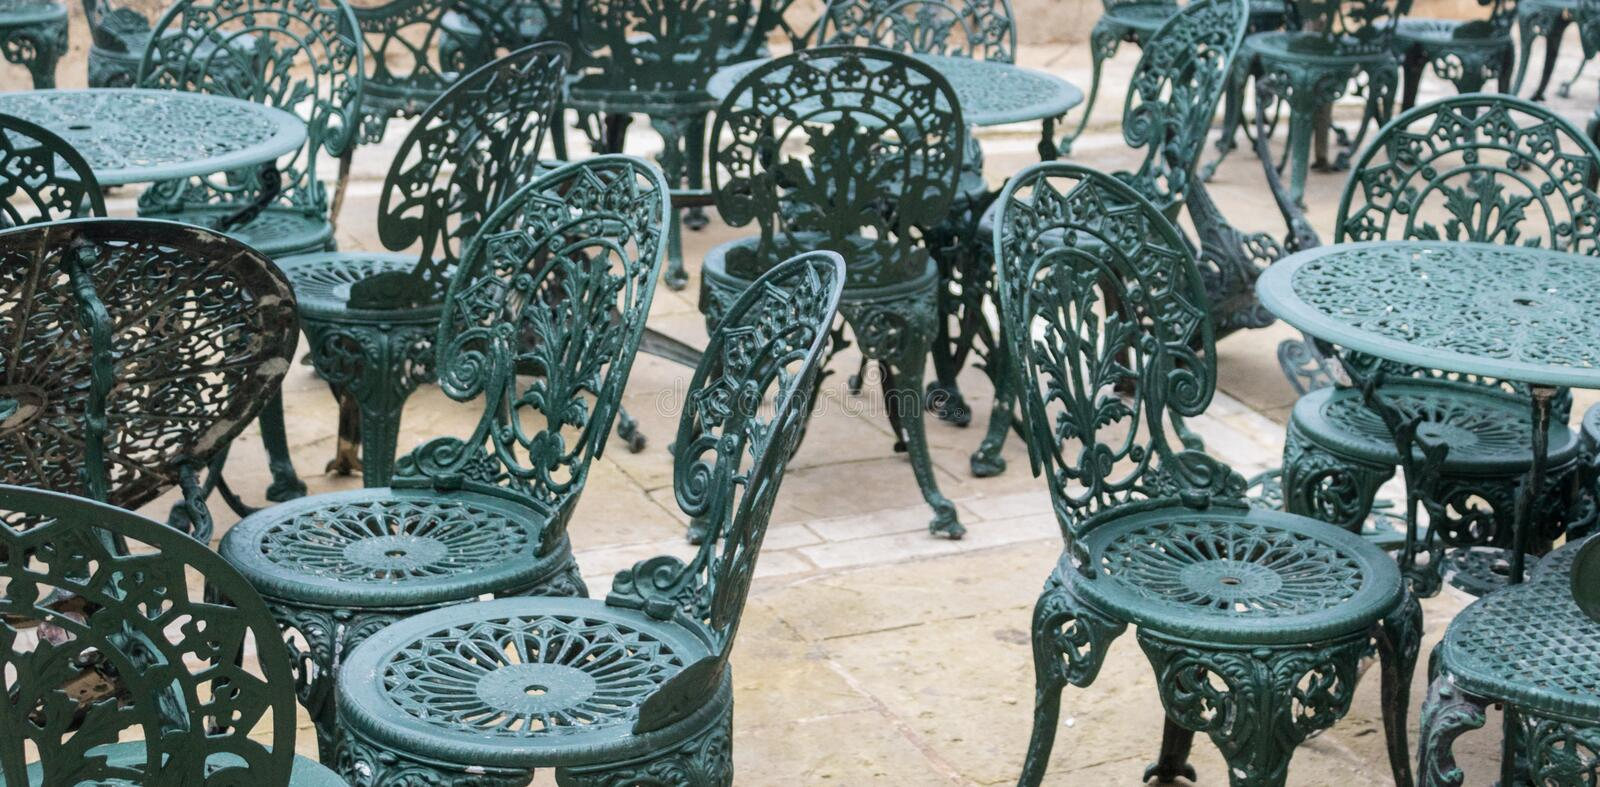 Full size view on many crested and figured metal chairs and tables. Green-blue color royalty free stock image